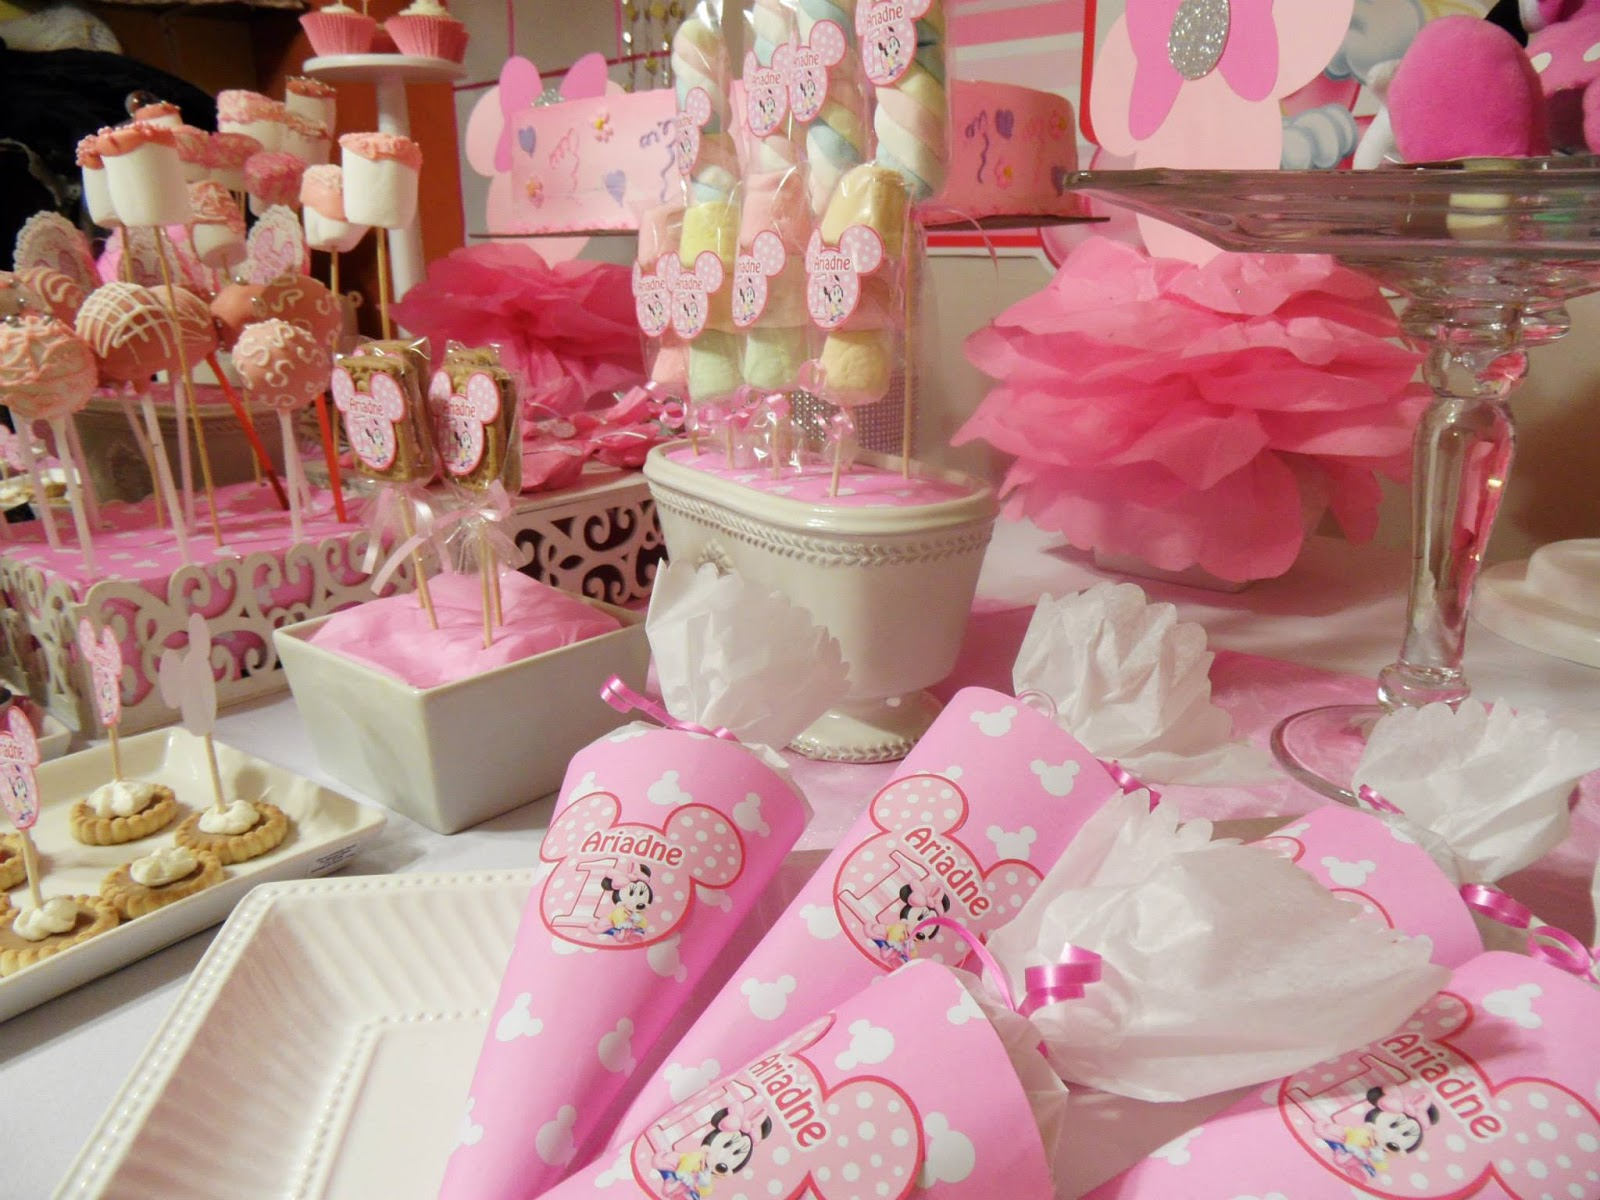 Fiesta primer a ito al estilo minnie de disney baby shower - Fiesta baby shower nina ...